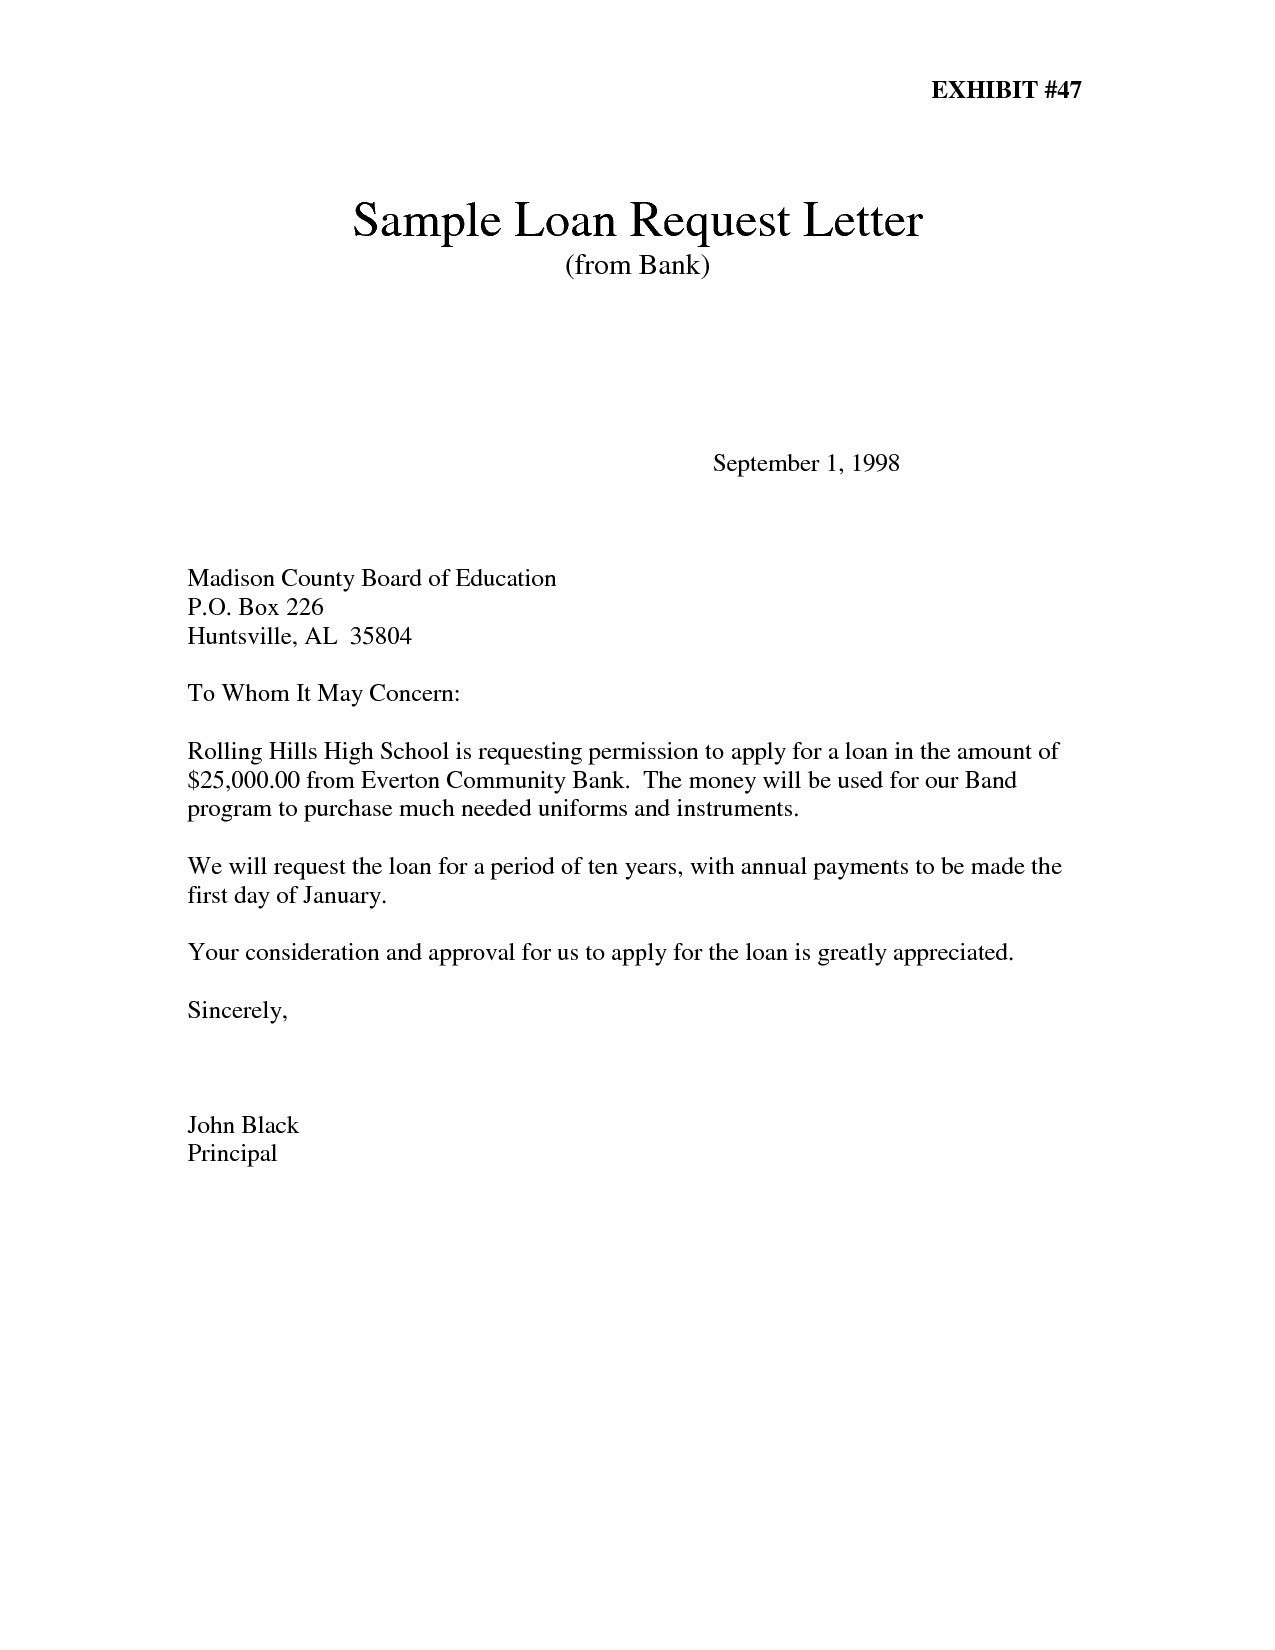 Personal loan repayment letter template examples letter templates personal loan repayment letter template letter format loan request refrence sample loan reques letter thecheapjerseys Choice Image